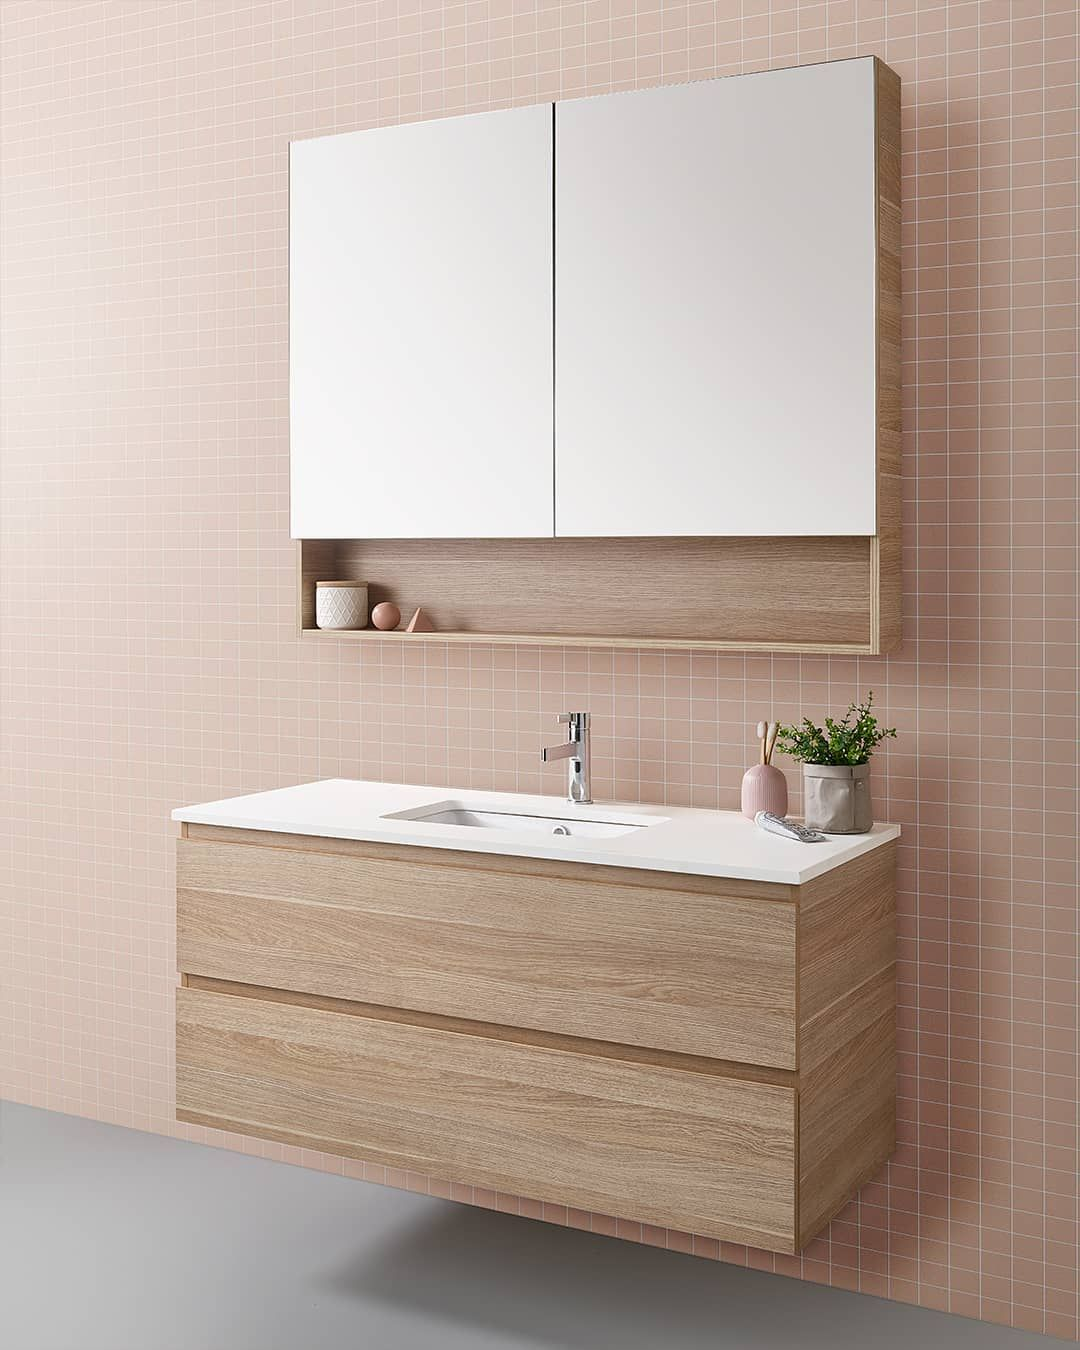 Customise Your Bathroom With Posh Domaine Vanities Units And Mirrors Cabinets There Are 27 Different Va Reece Bathroom Mirror Cabinets Bathroom Mirror Cabinet